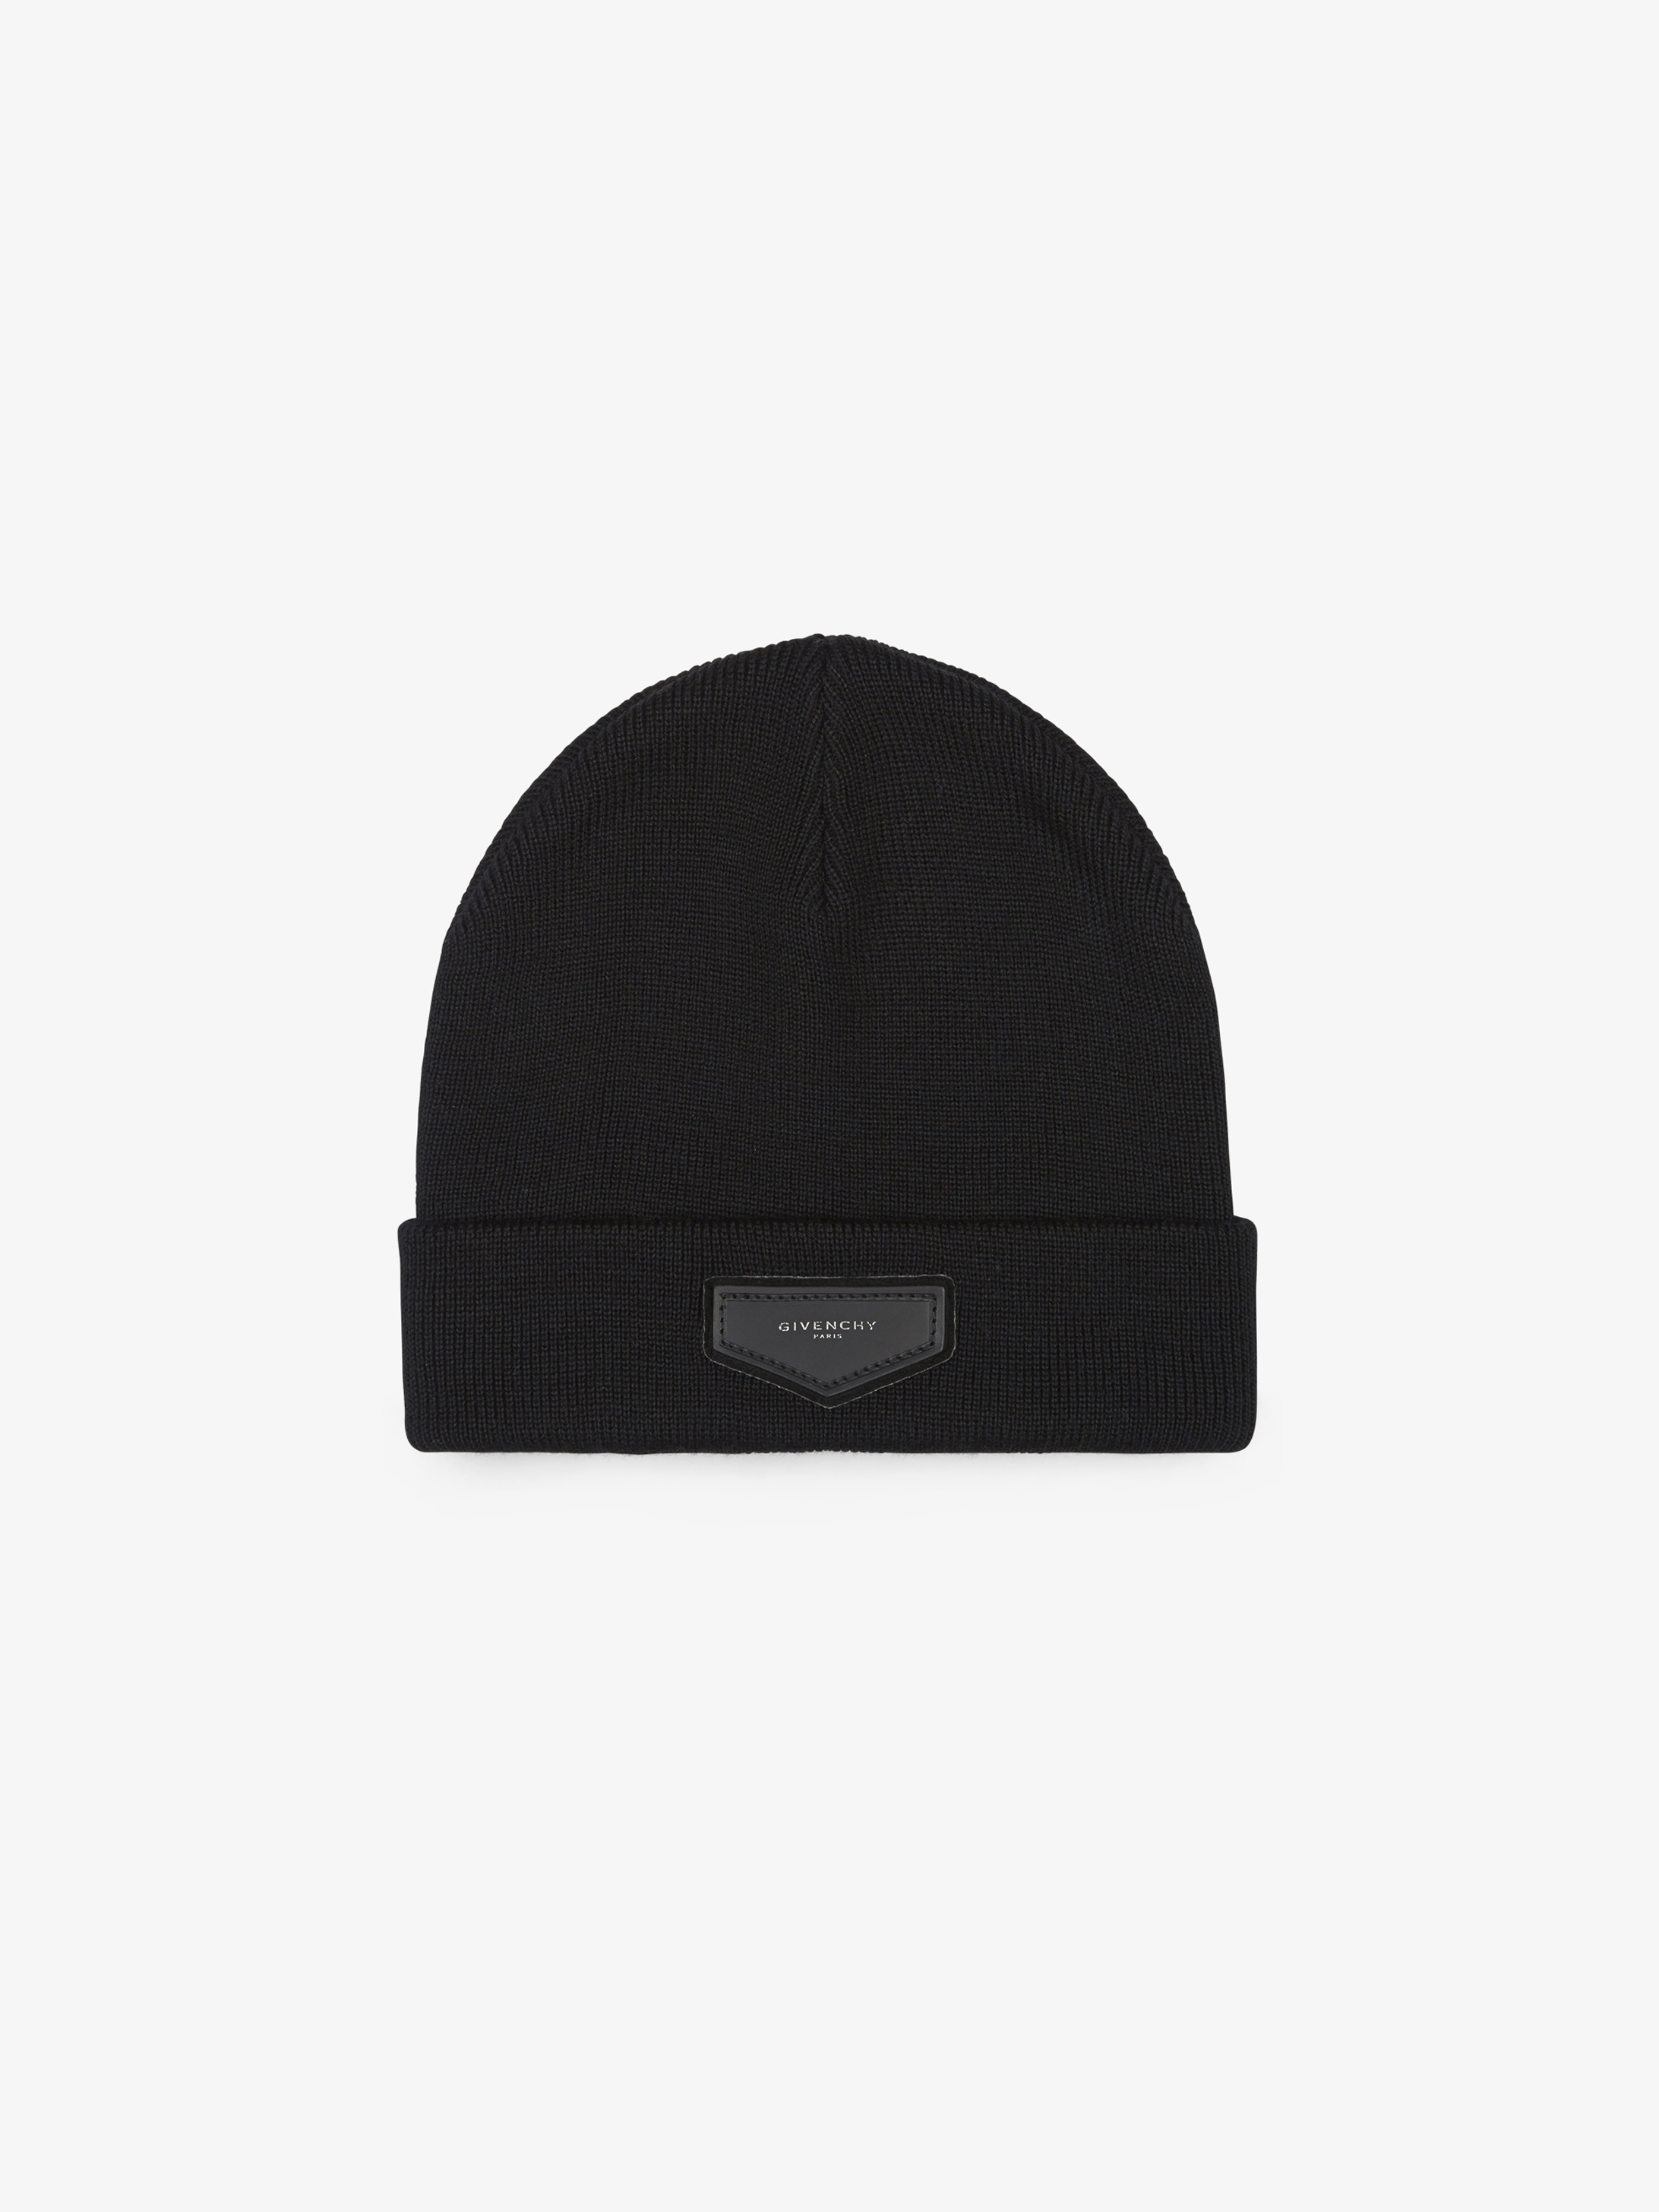 GIVENCHY patch hat